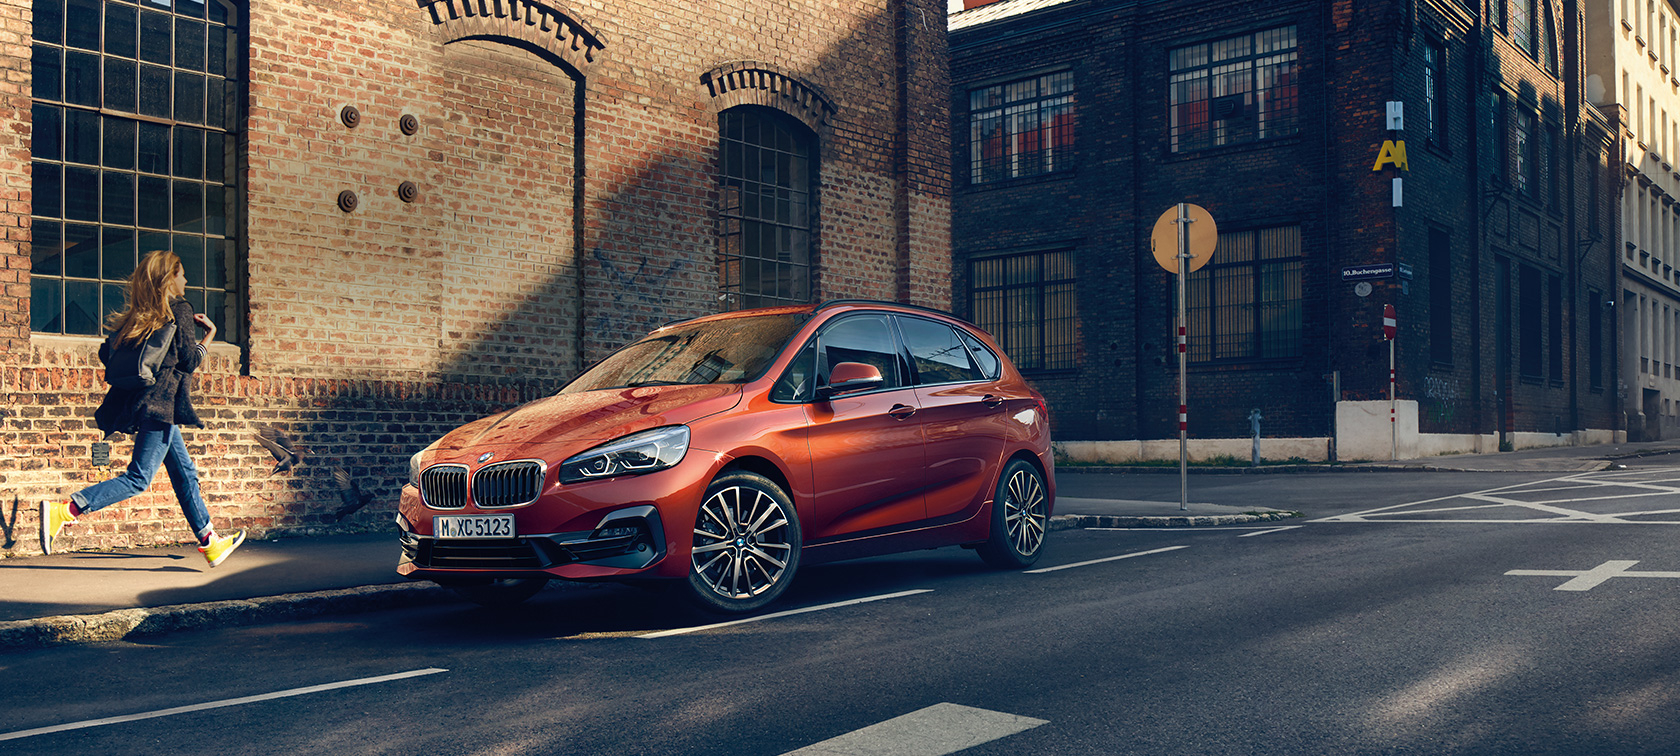 BMW 2-serie Active Tourer F45 Facelift 2018 Sunset Orange metallic sedd snett framifrån parkerad på gatan